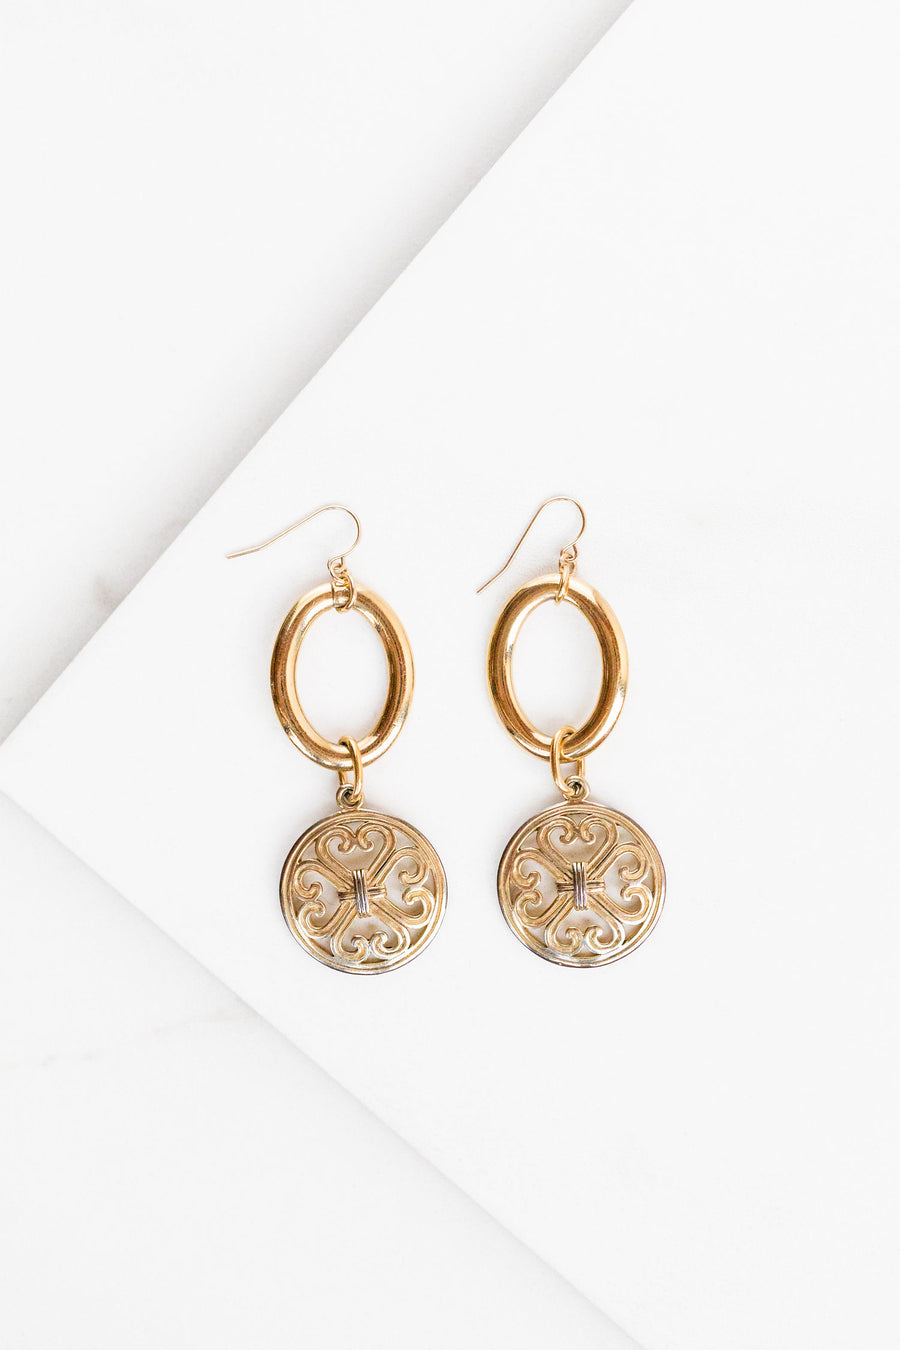 Find the perfect pair of earrings you're looking for from Charme Silkiner! These 24k gold overlay hoop earrings with a gold medallion coin are seriously stunning. Perfect to dress or dress down any outfit the Gianna Earrings are the perfect must have for everyone!